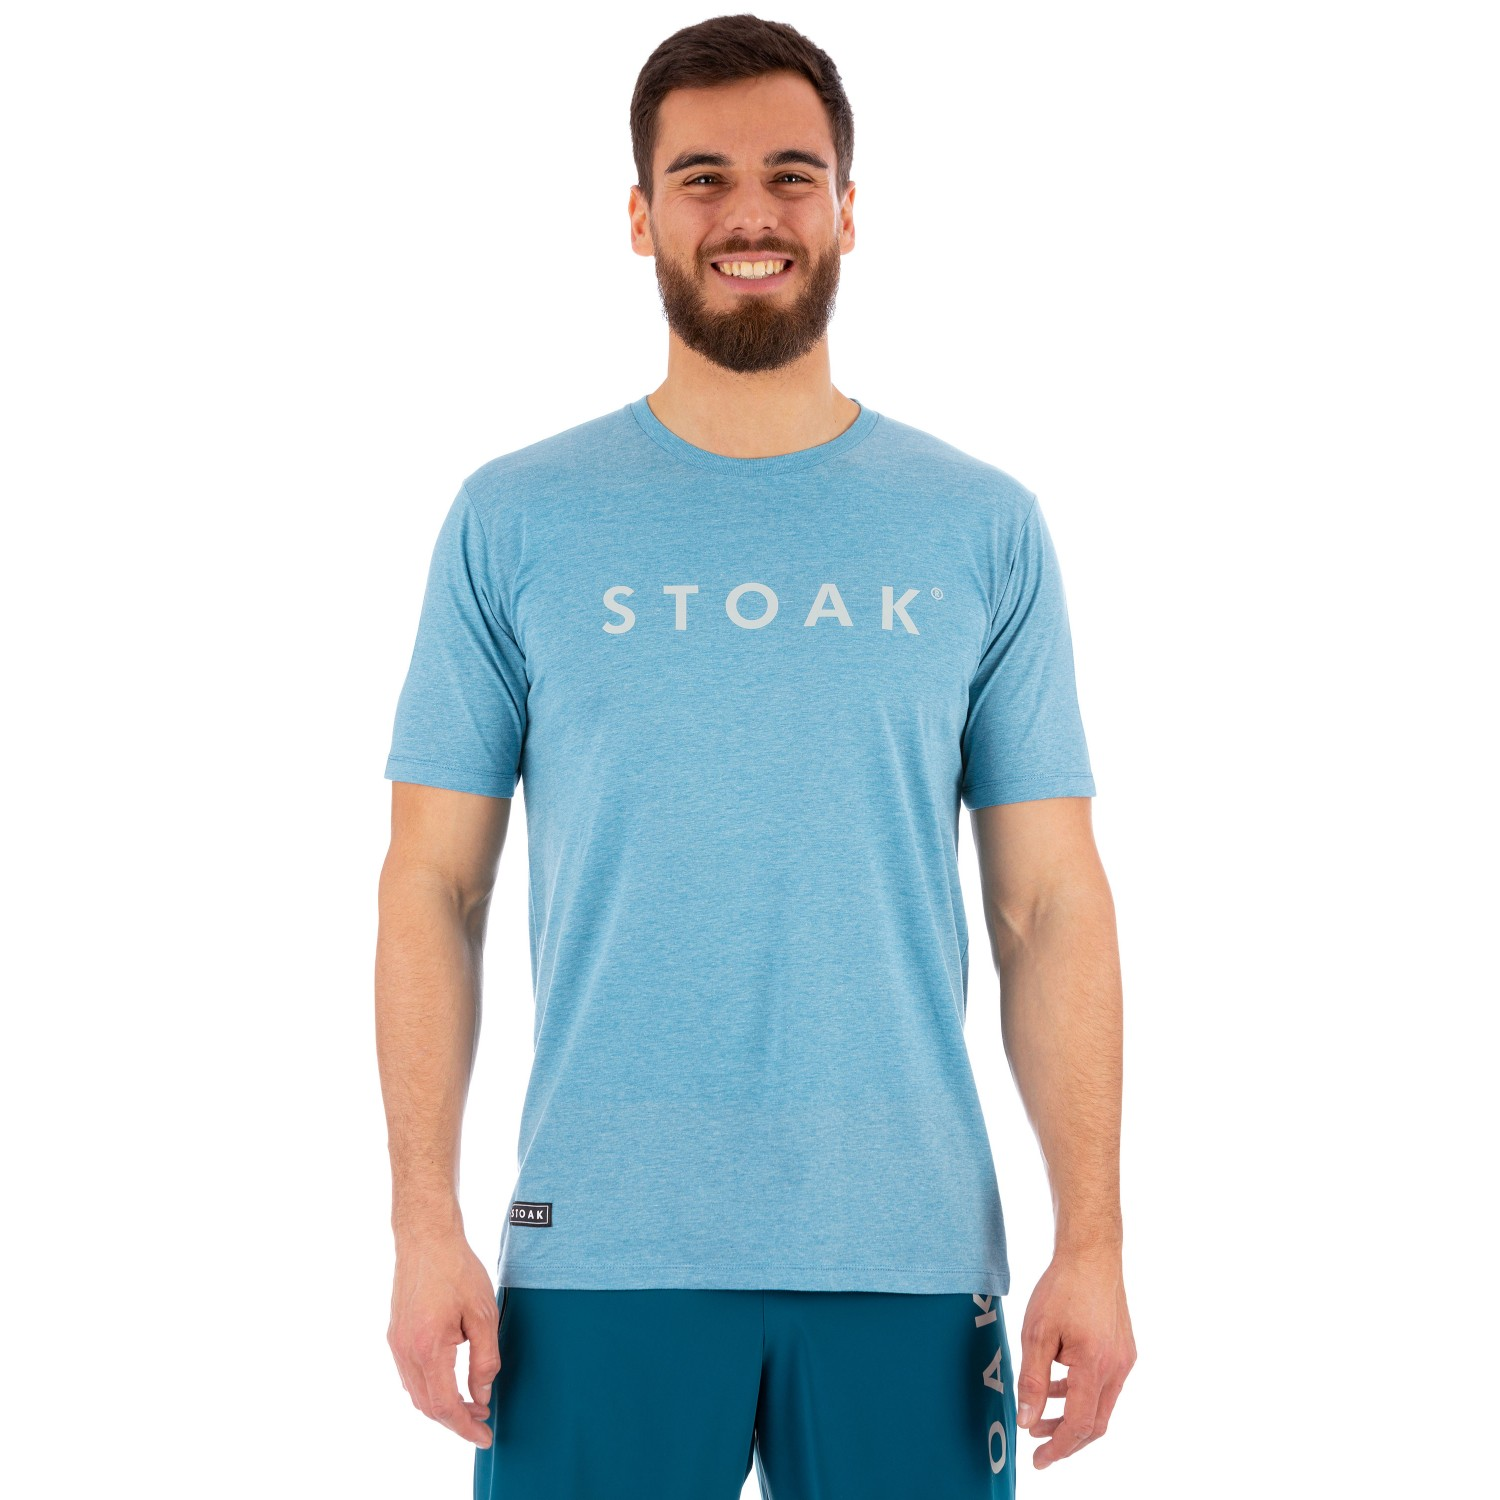 STOAK FASTER T-Shirt